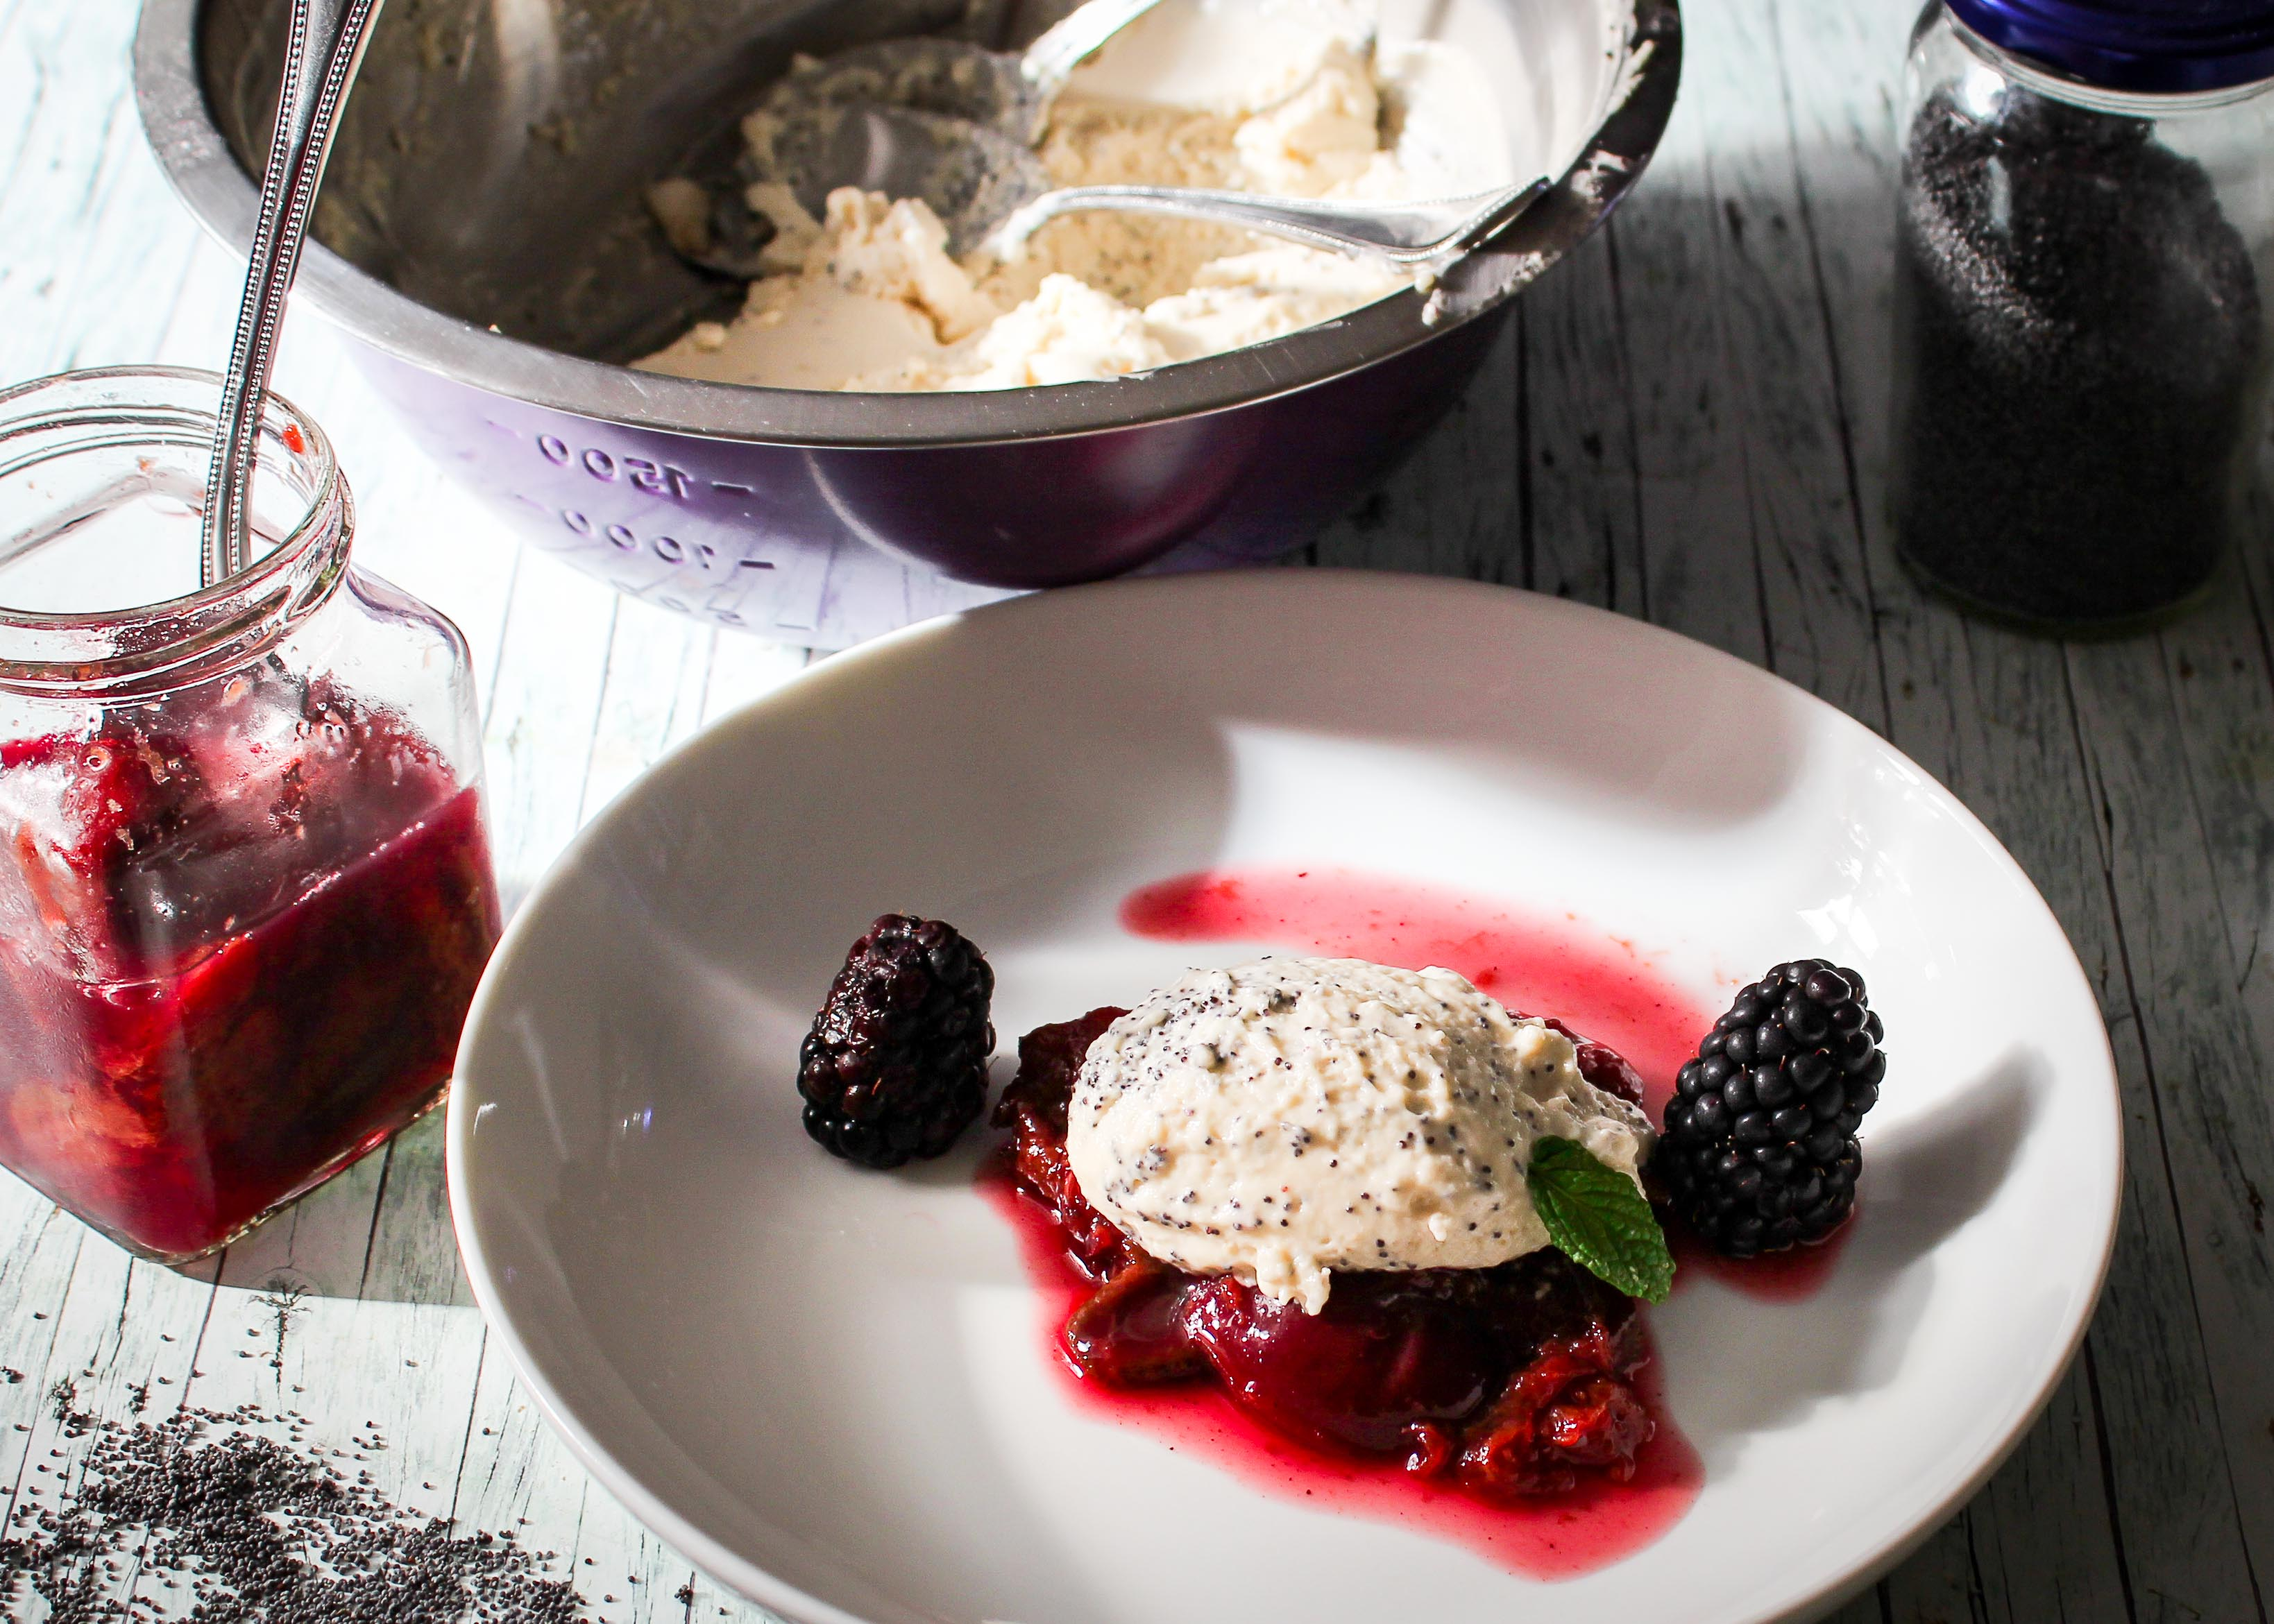 White Chocolate Poppy Seed Mousse with Red Wine Plums perfect for the Christmas menu